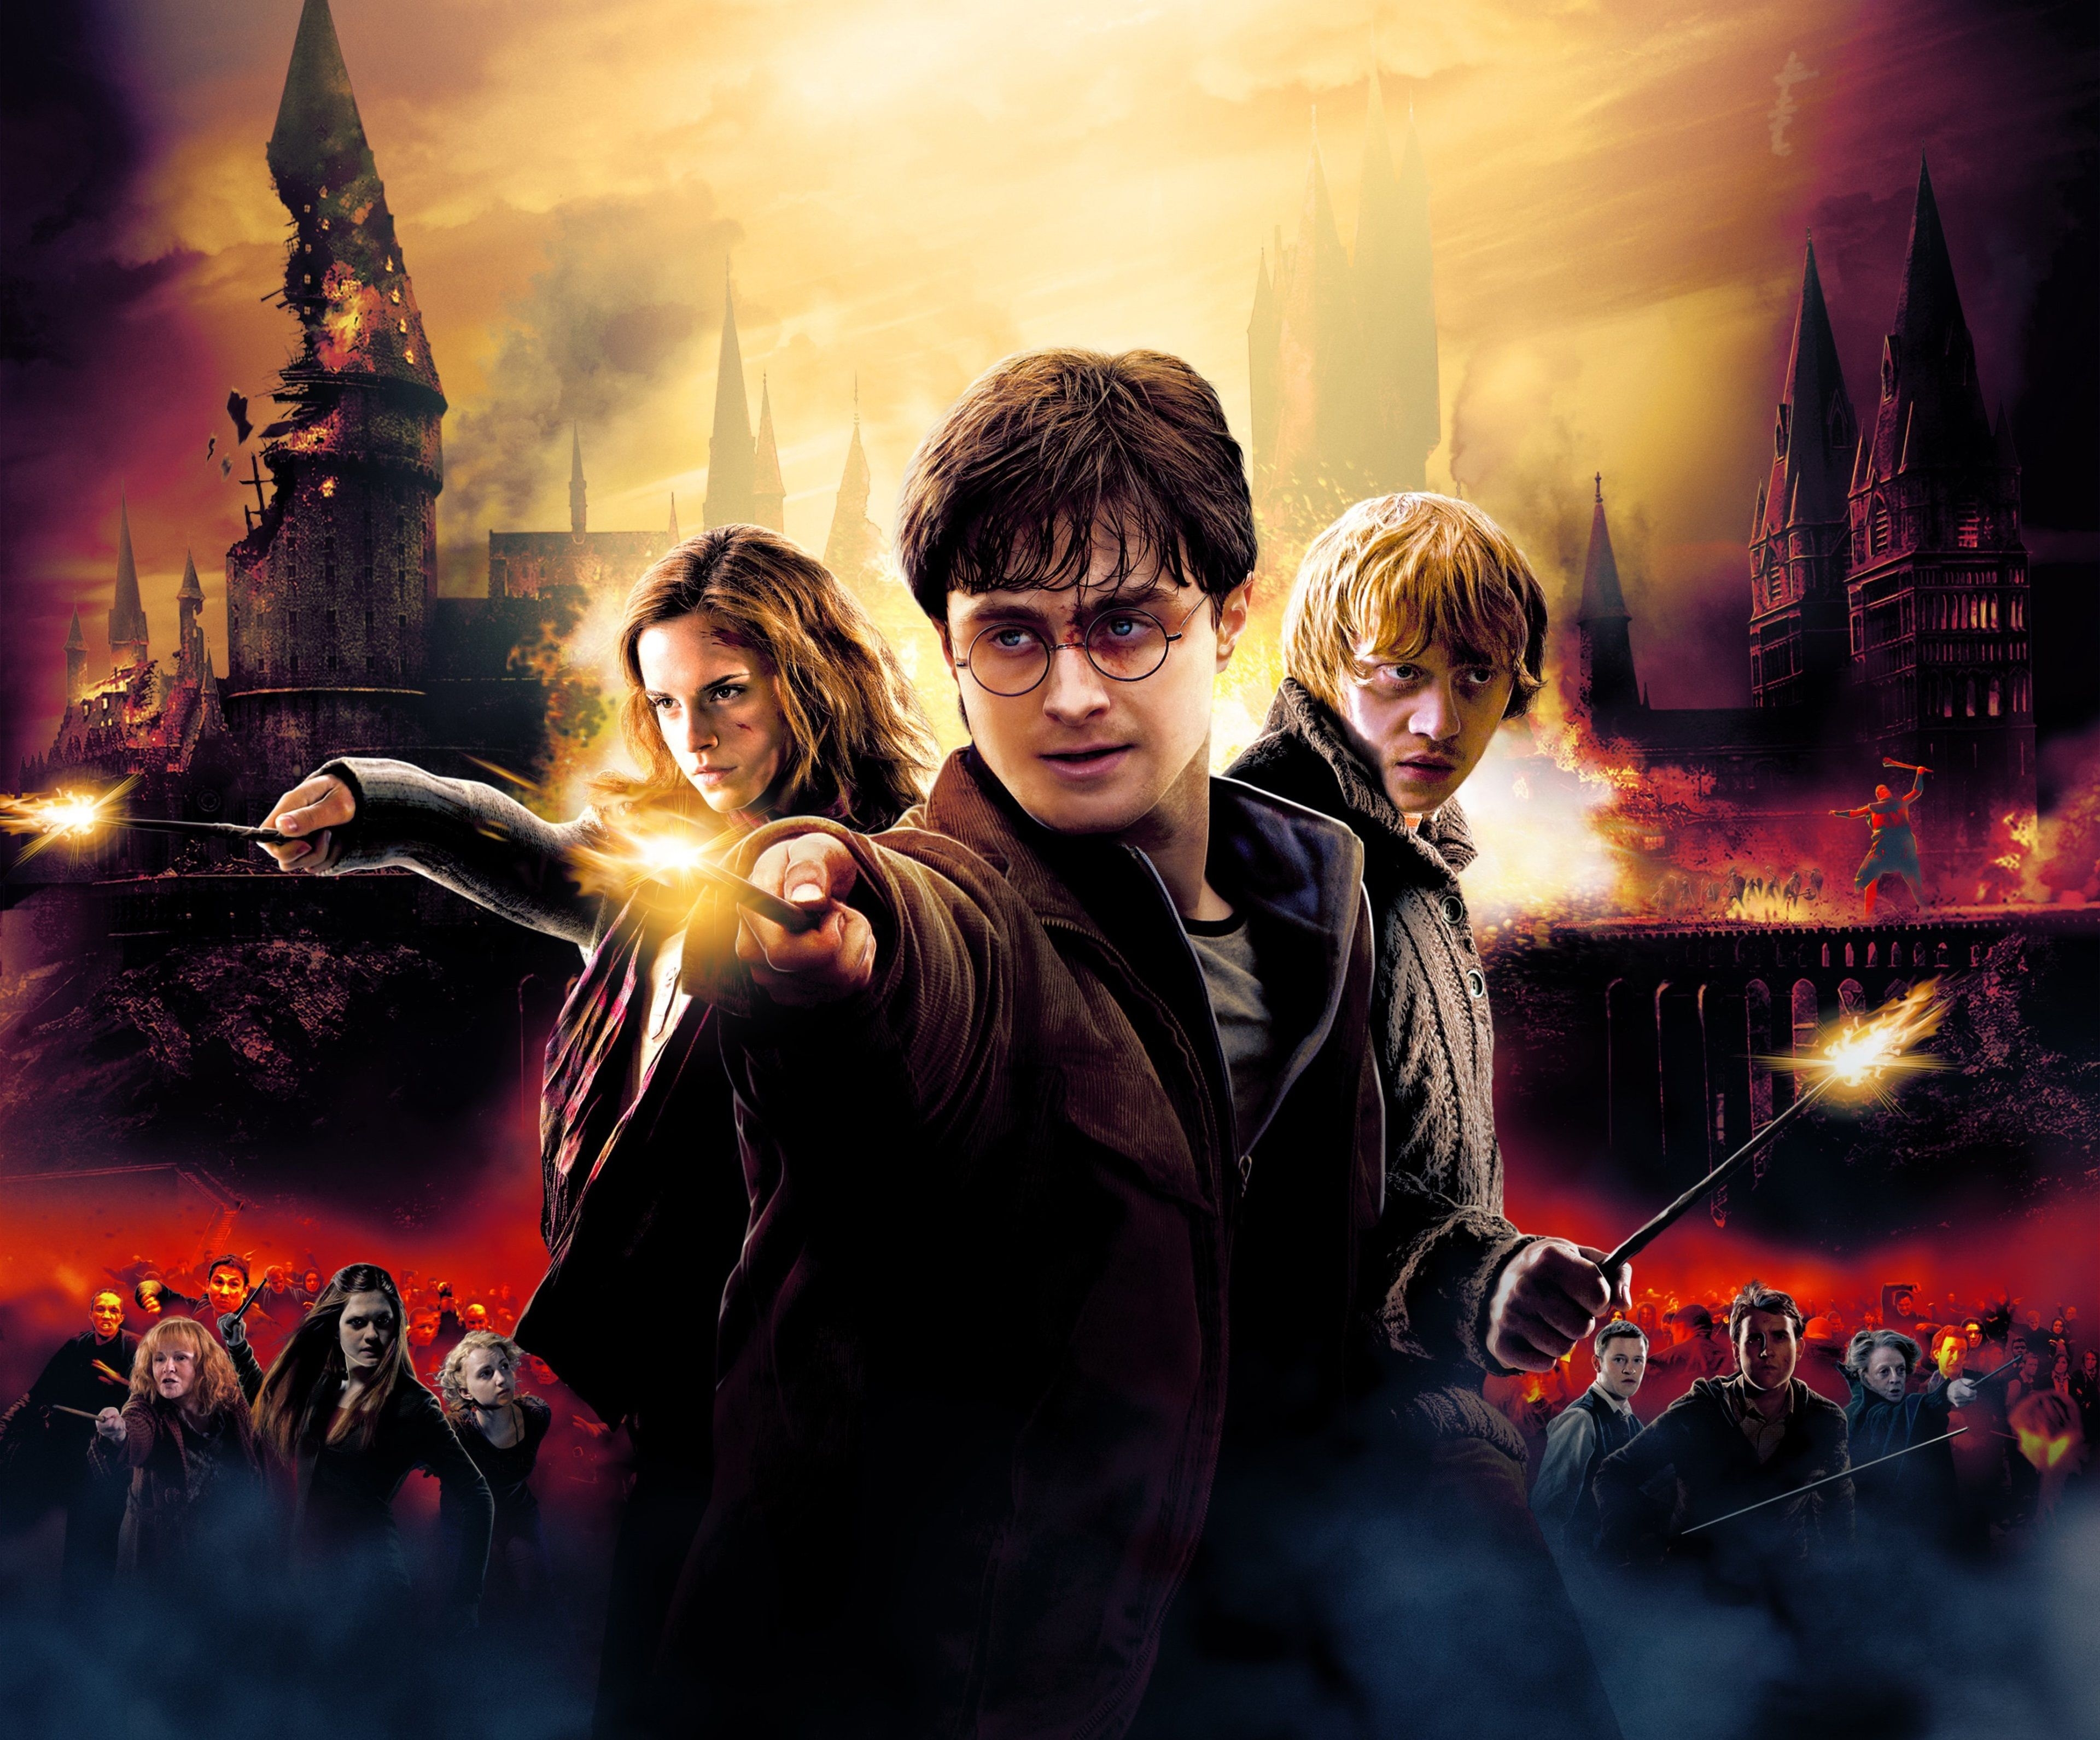 3840x3182 harry potter and the deathly hallows 4k full hd free 3840x3182 harry potter and the deathly hallows 4k full hd free wallpaper voltagebd Image collections